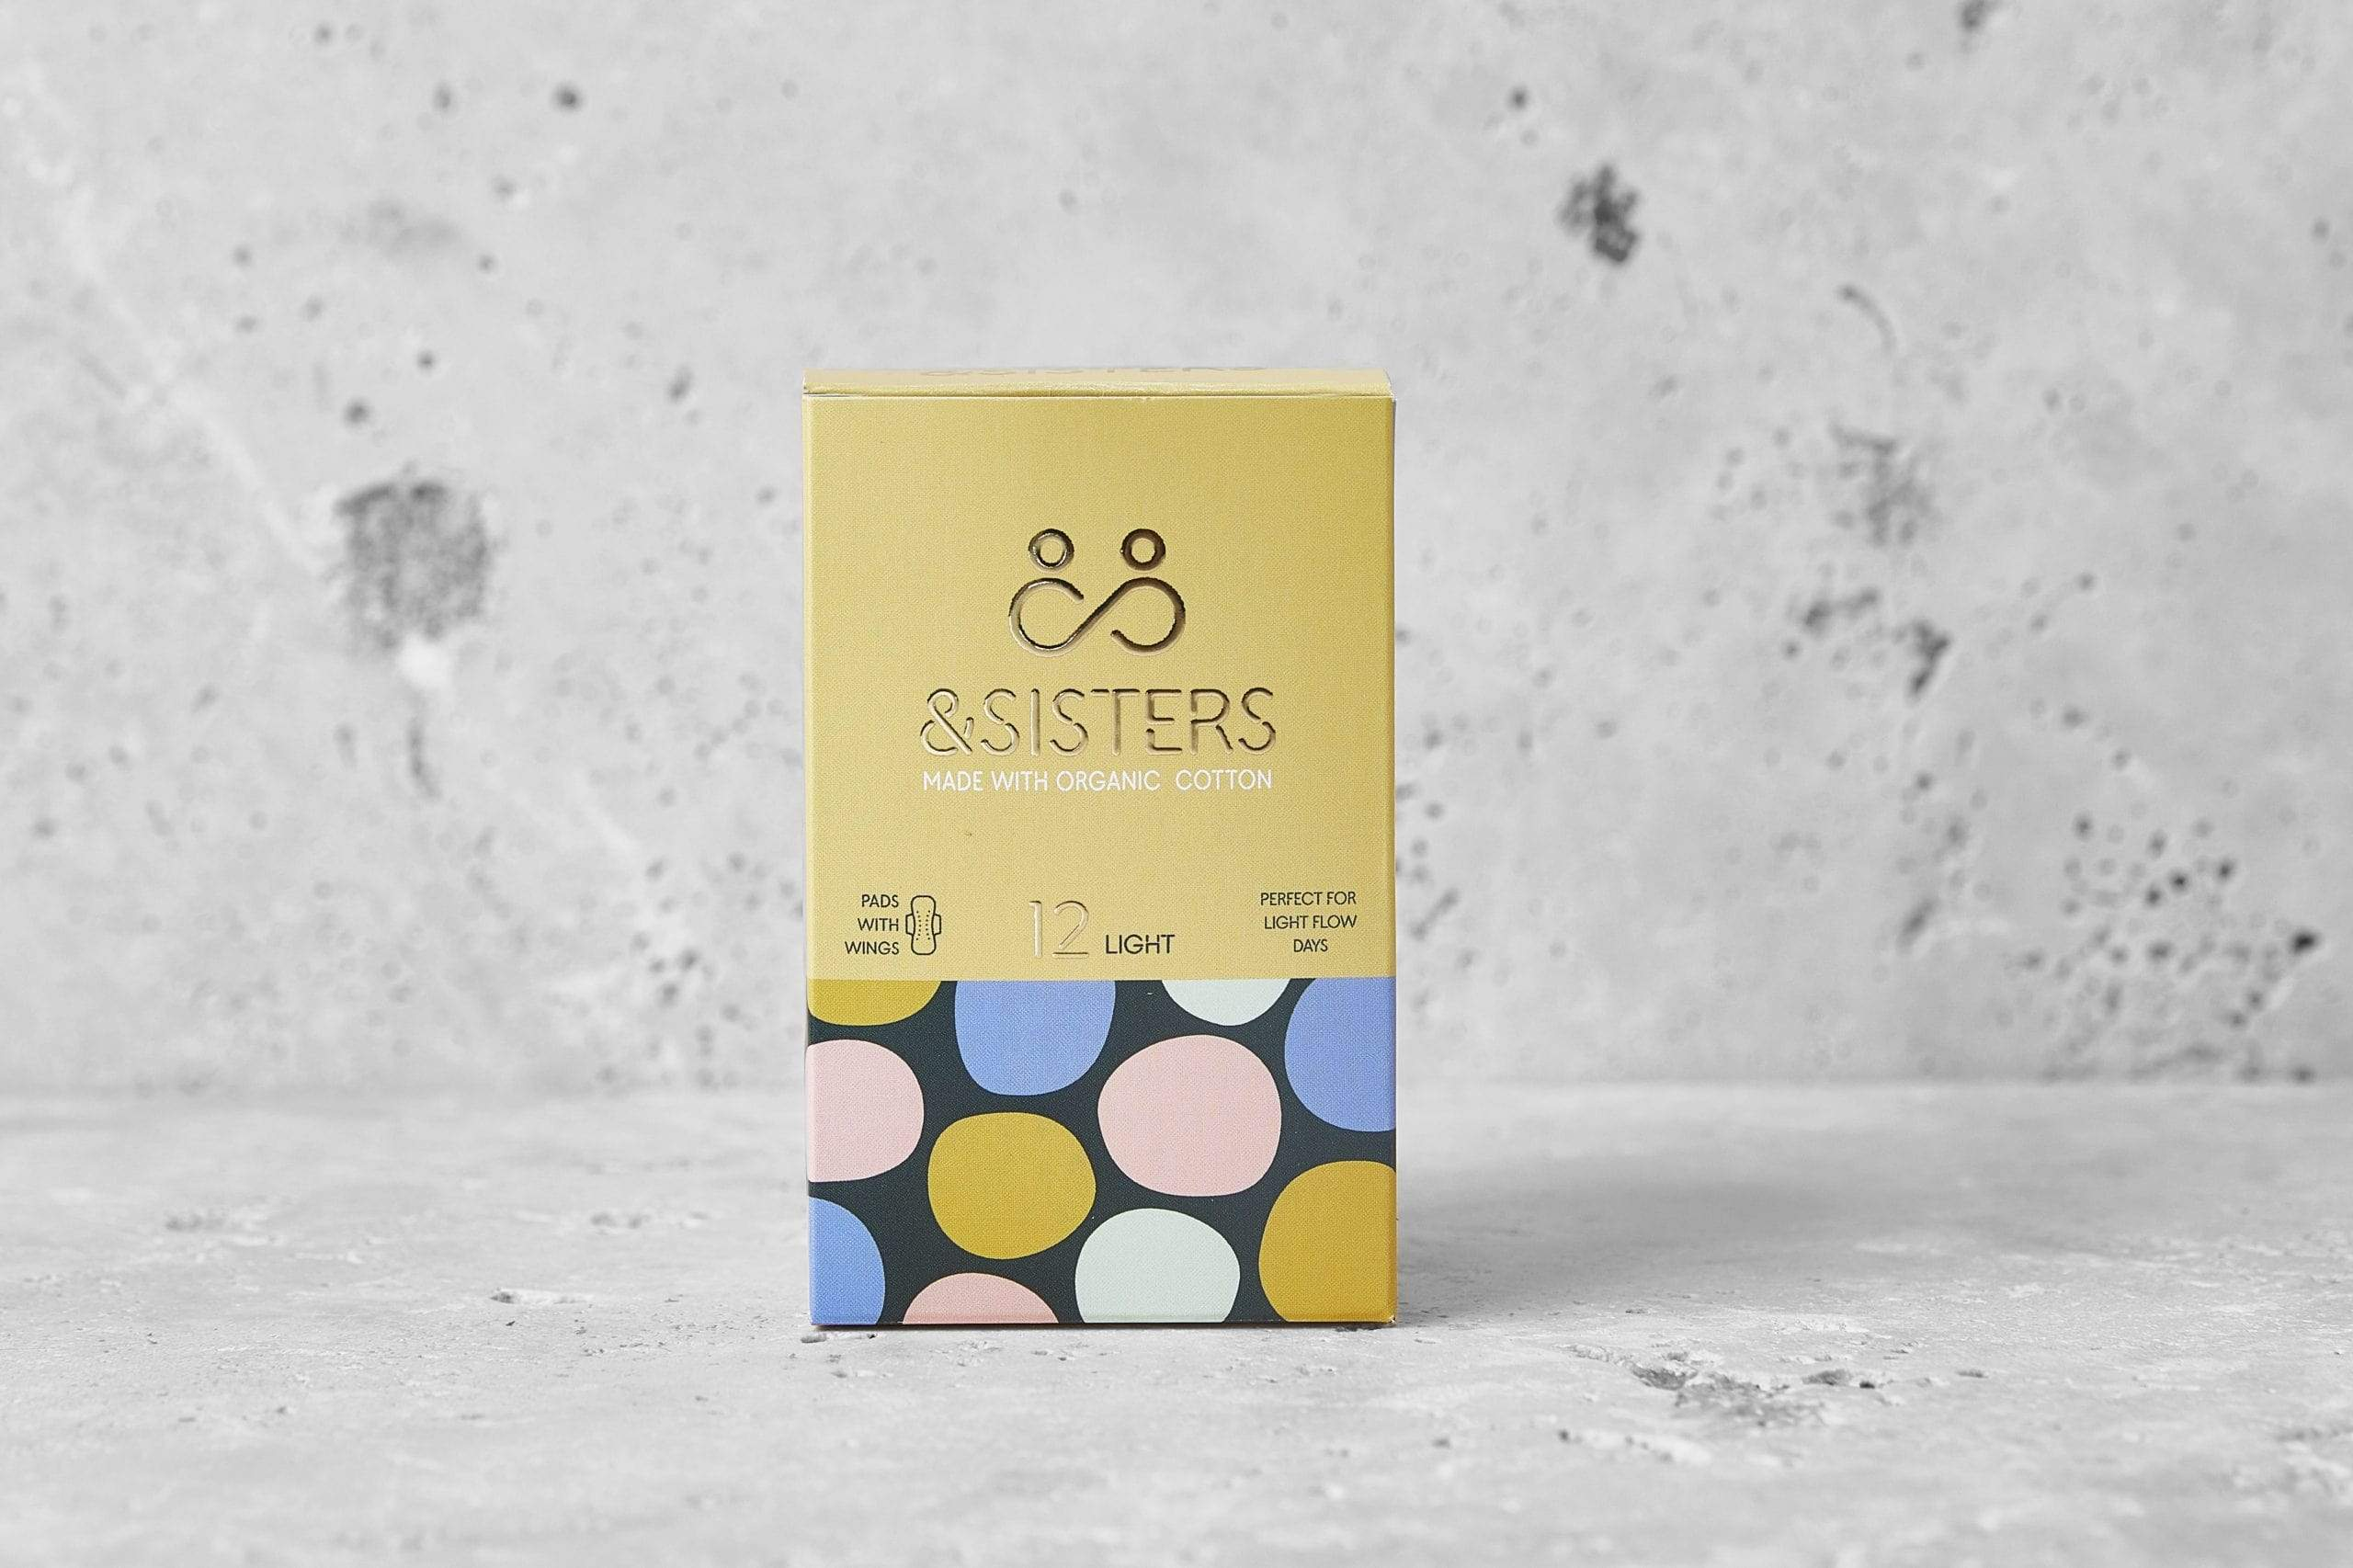 &sisters All Products Light Organic Cotton Pads With Wings